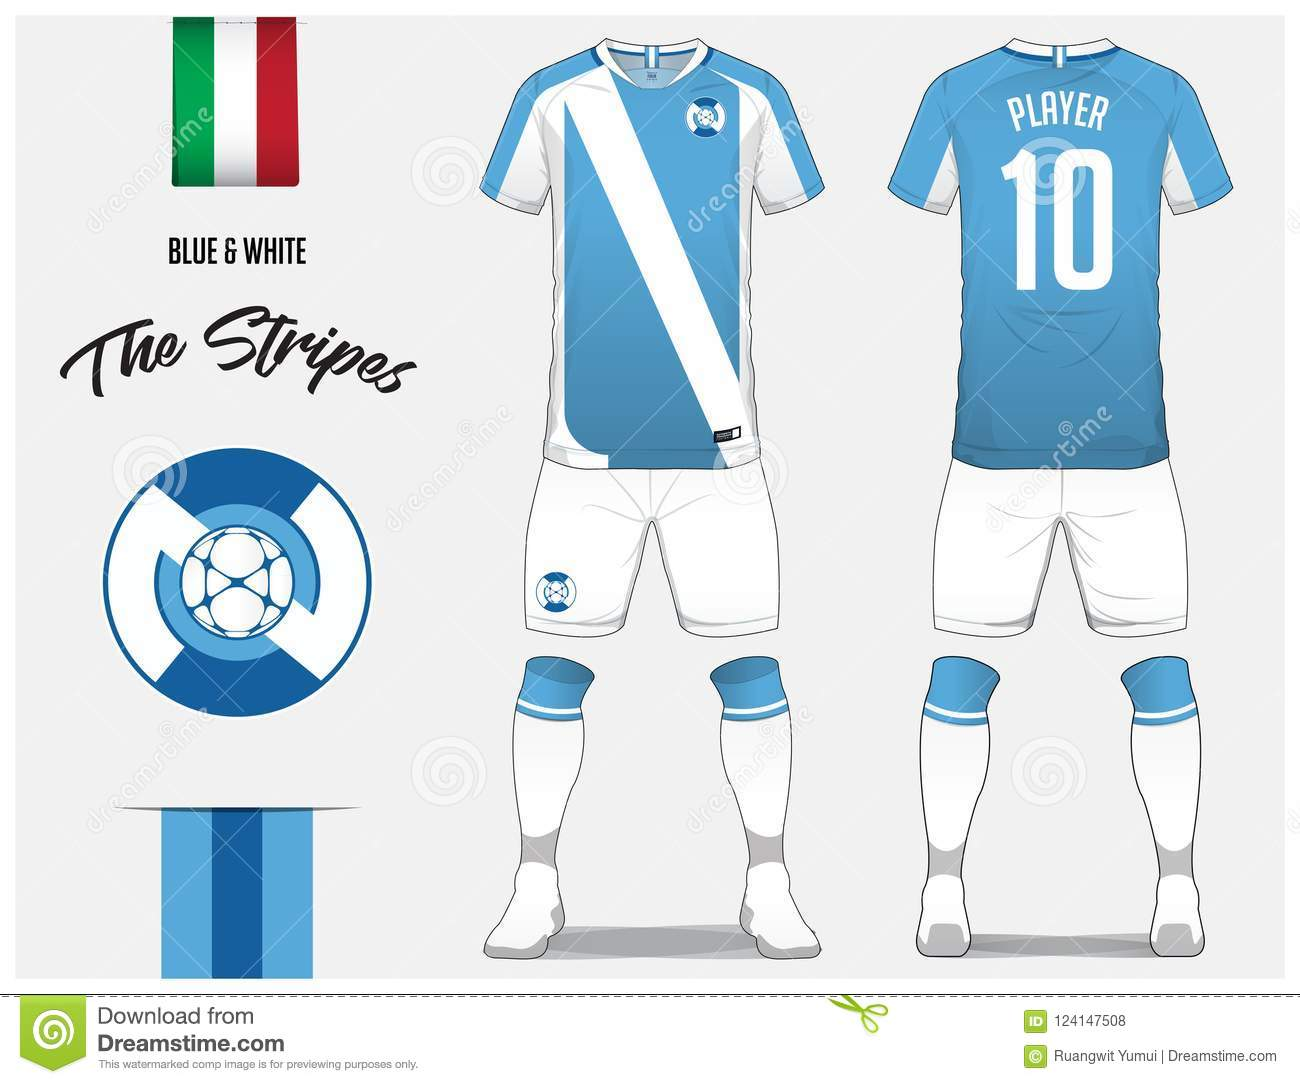 bff55d131 Soccer jersey or football kit template for football club. Blue and white  stripe football shirt with sock and white shorts mock up.